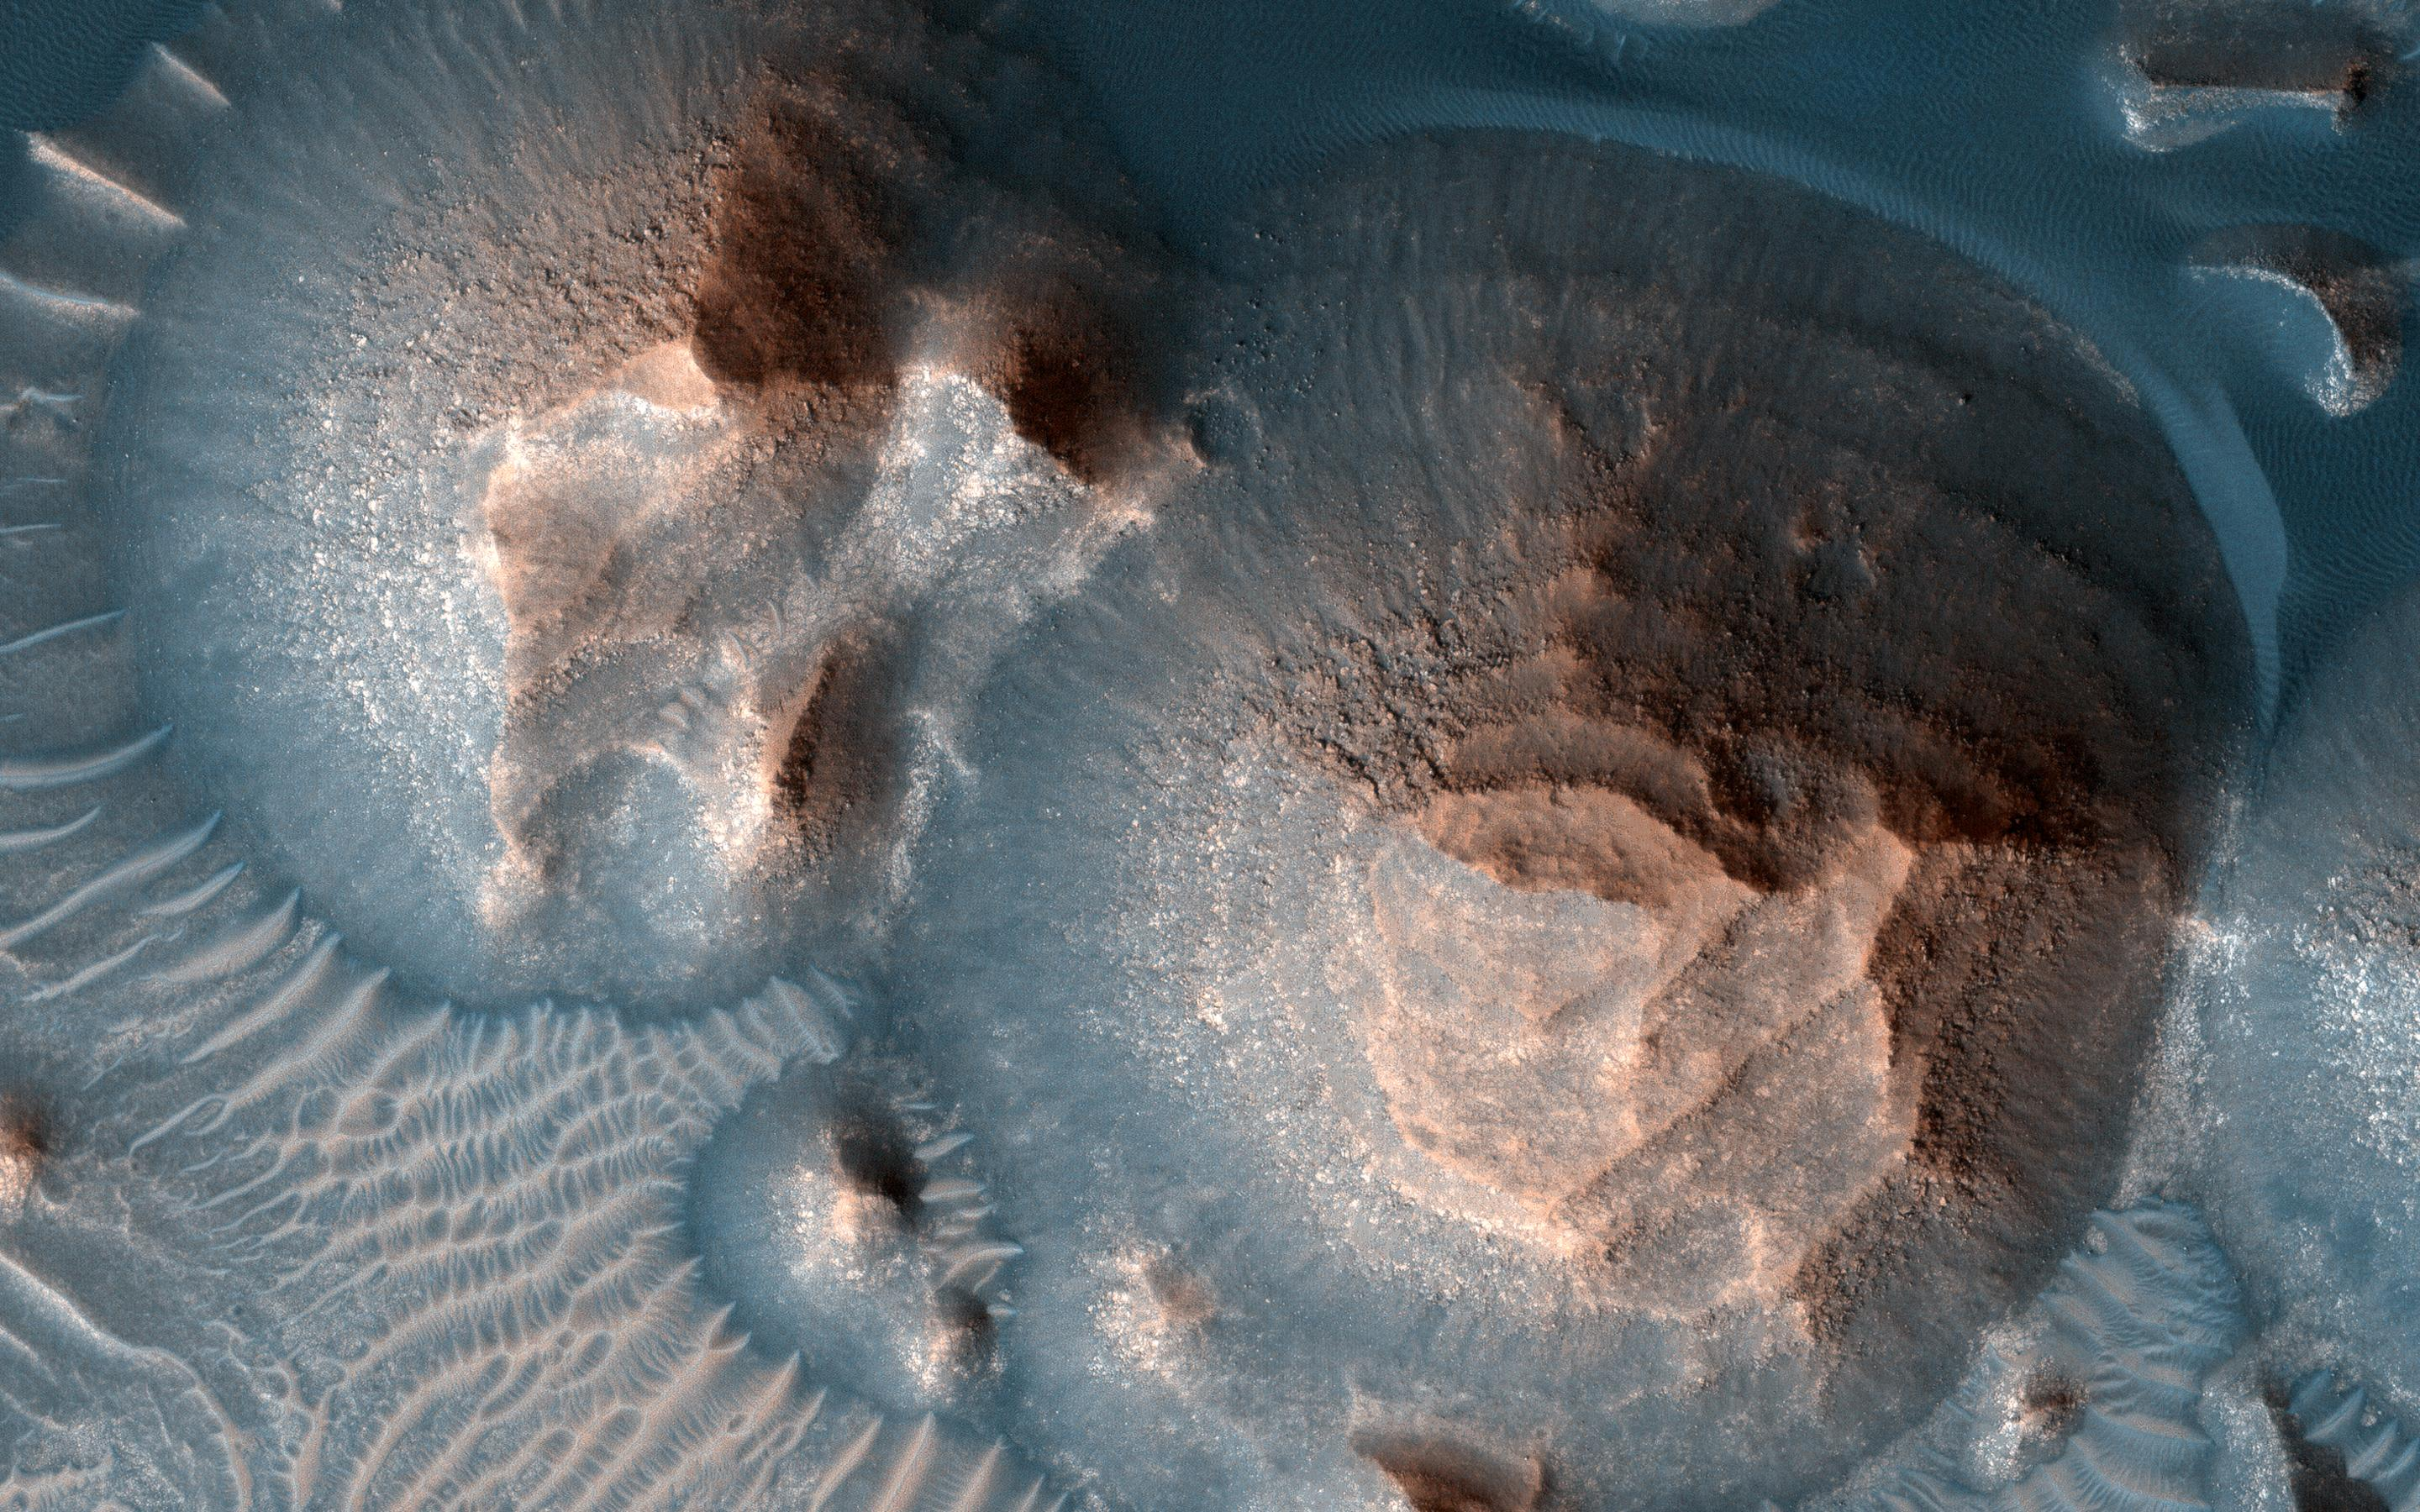 This image acquired on October 1, 2020 by NASAs Mars Reconnaissance Orbiter, shows several craters in Arabia Terra filled with layered rock.